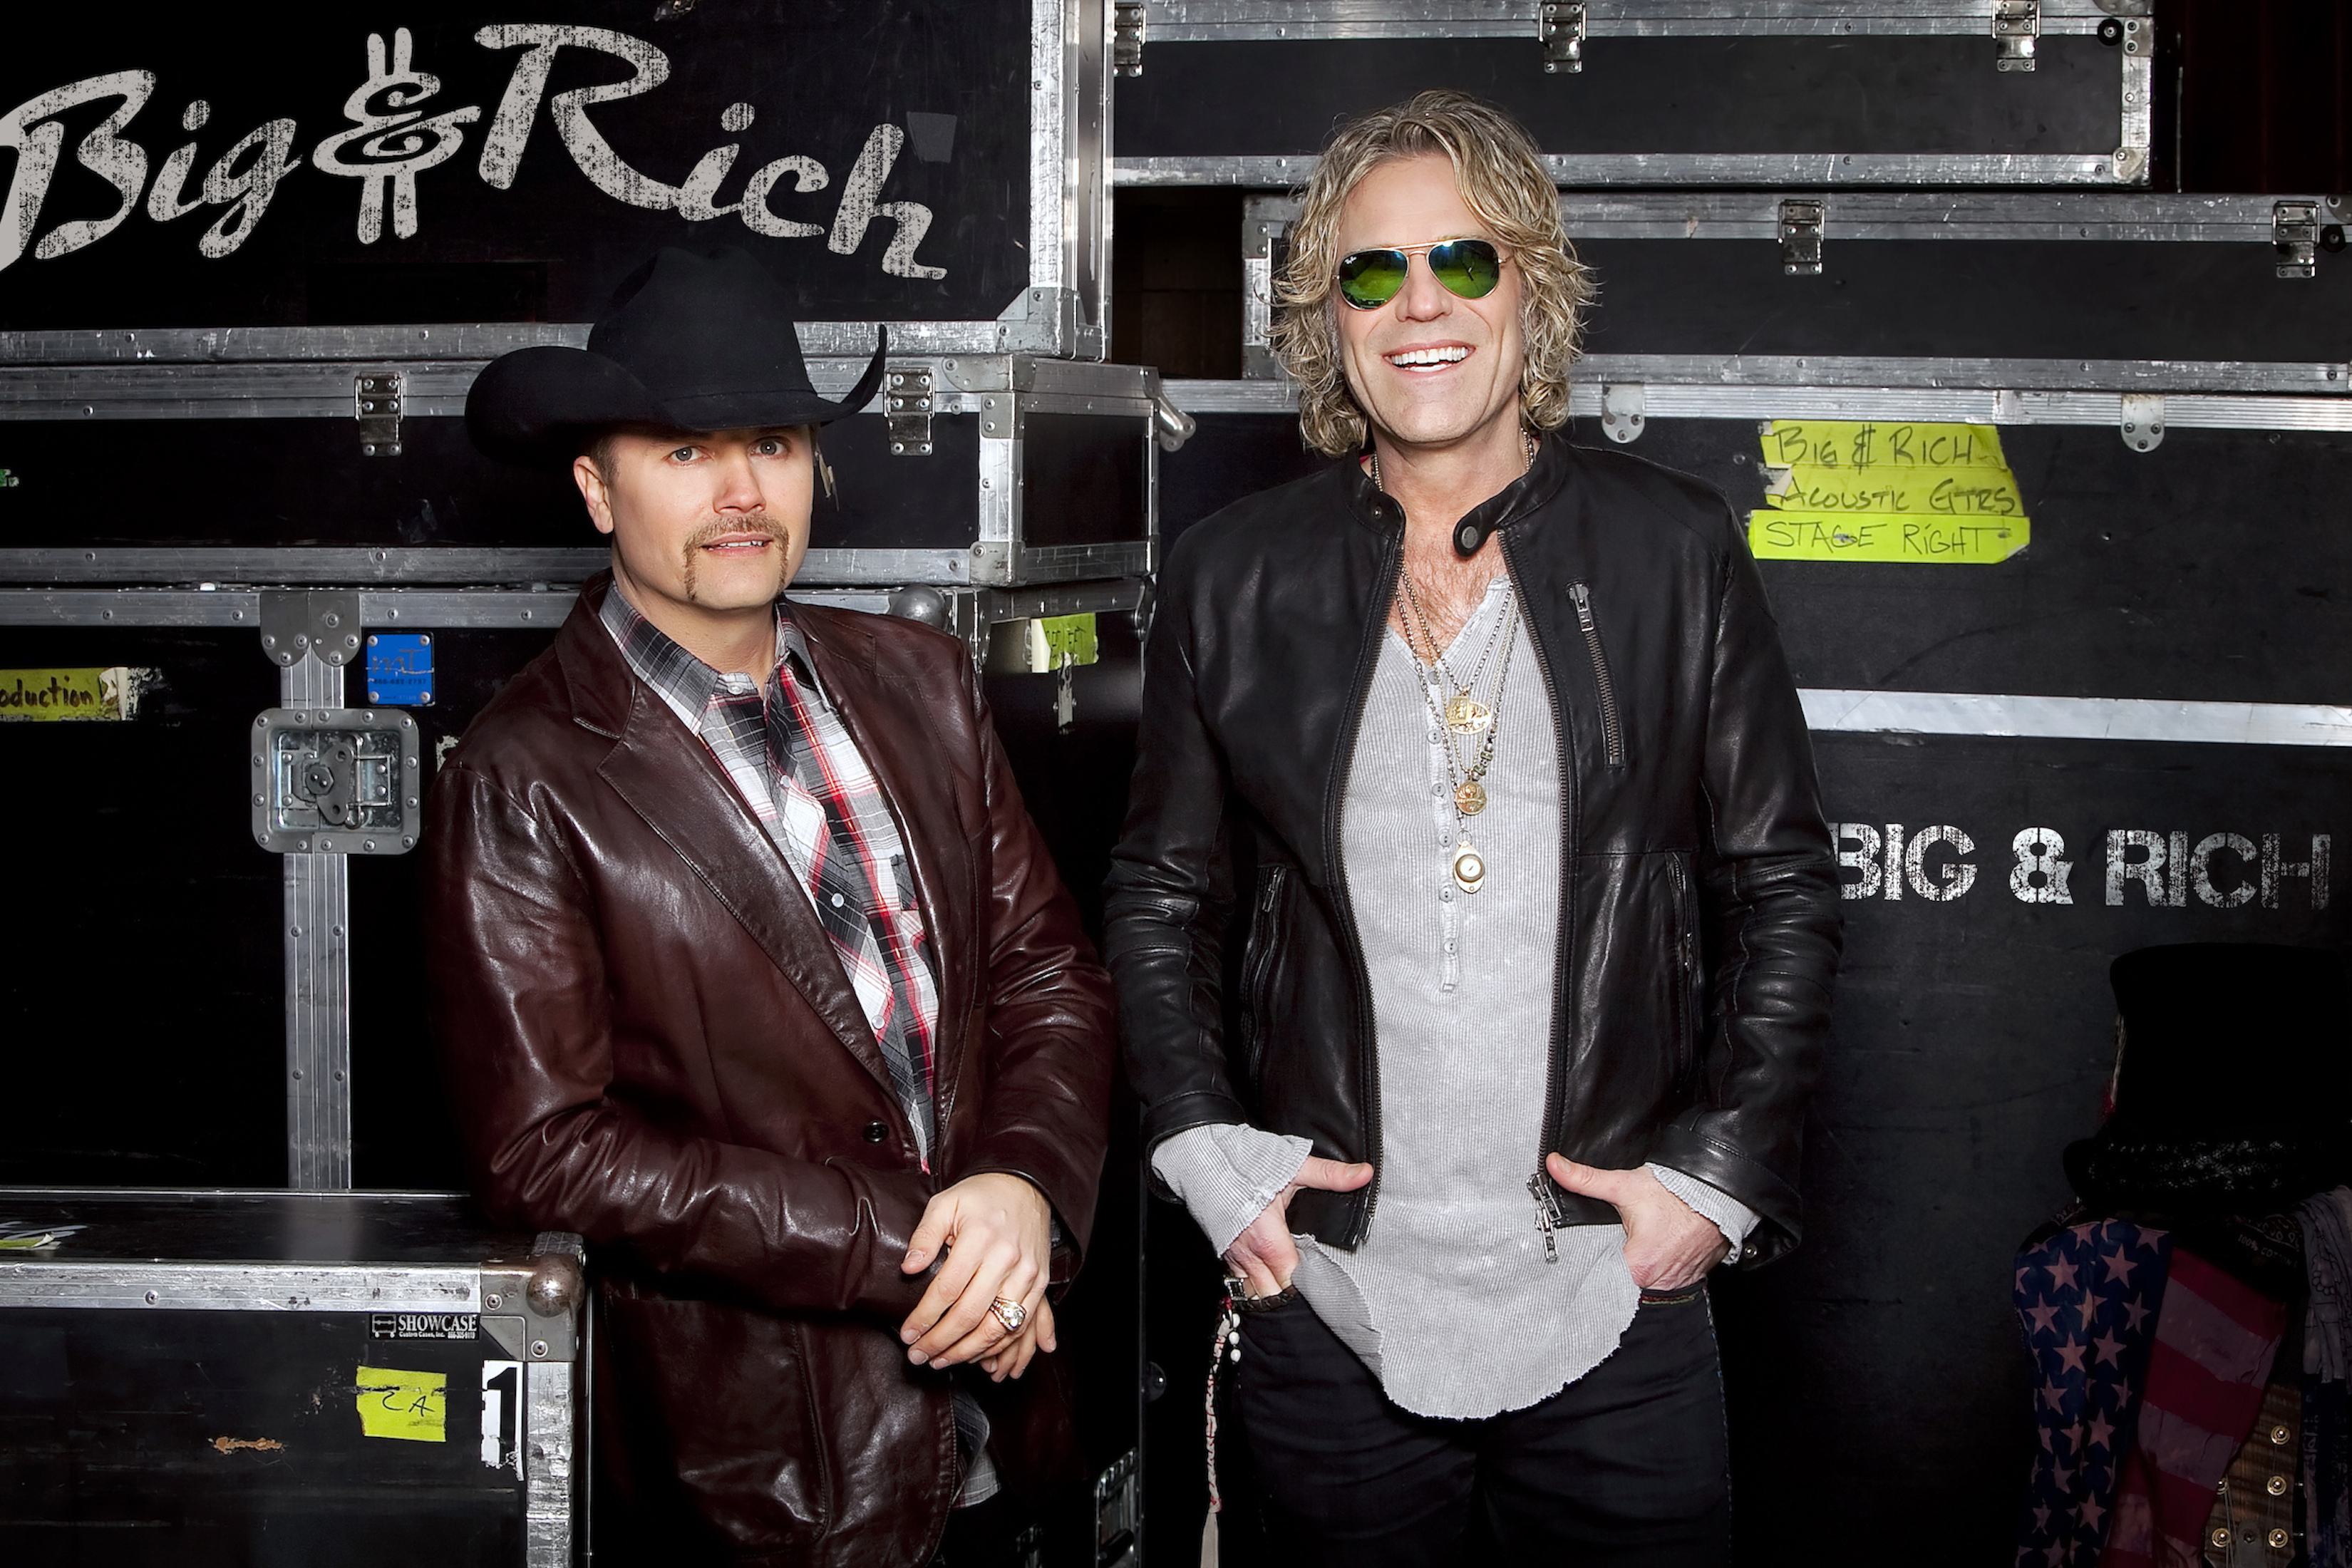 Big & Rich at the Island Showroom